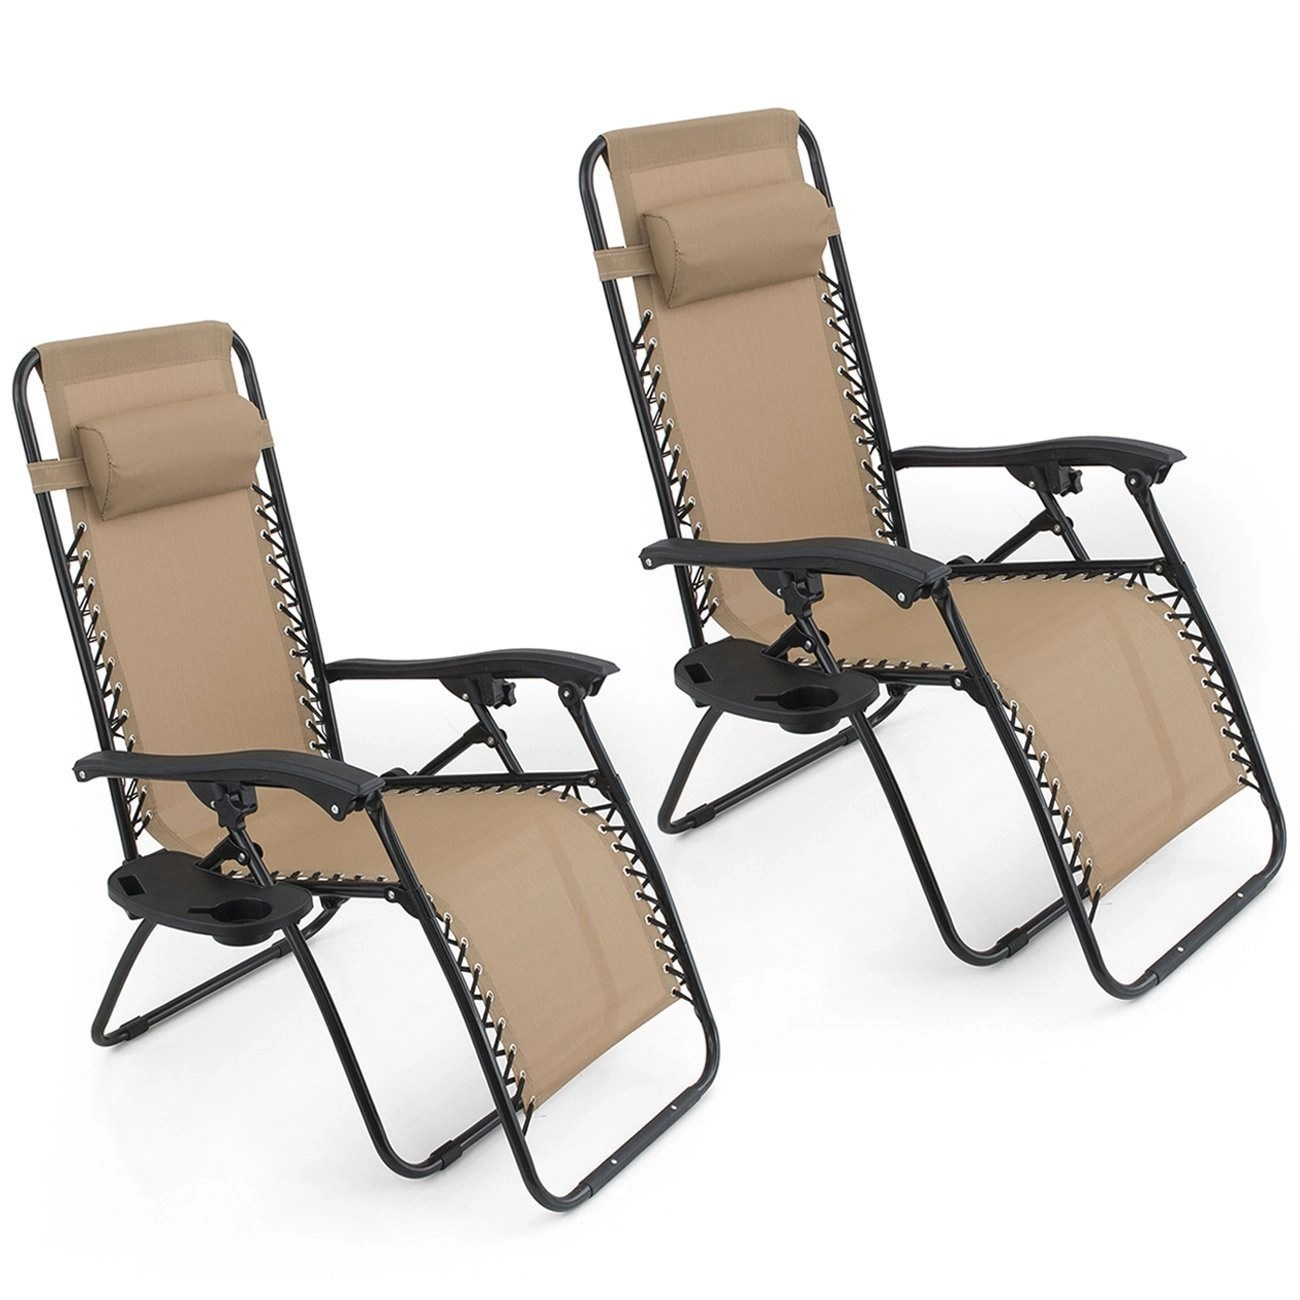 Outdoor anti gravity chair - Outdoor Anti Gravity Chair 51